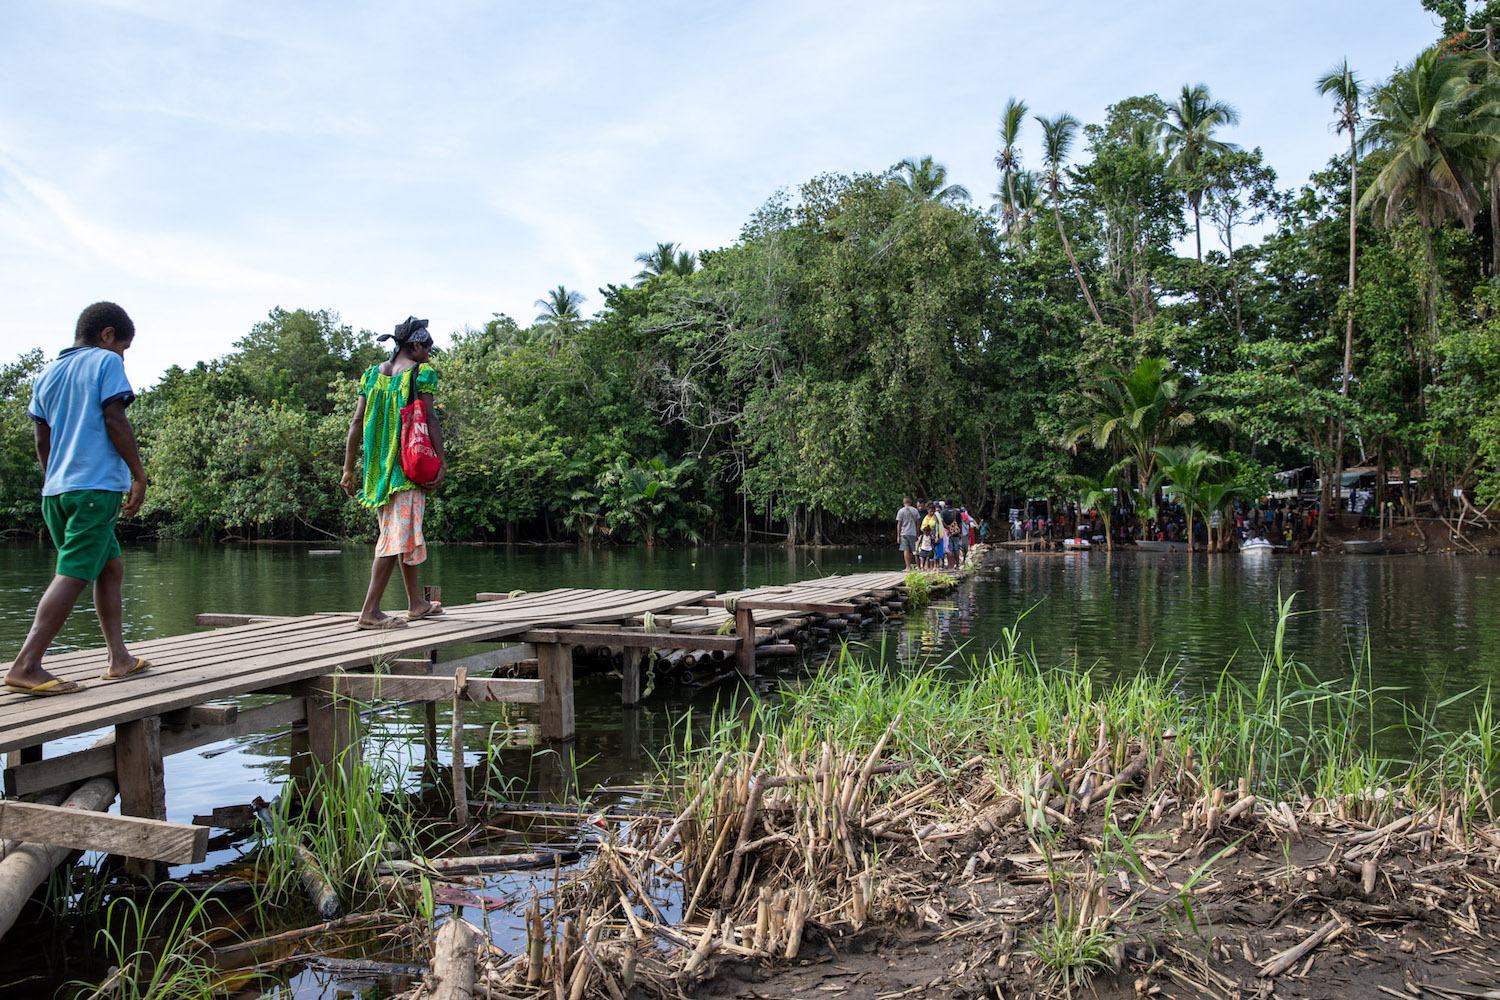 In PNG, a fallen bridge is testament to the chasm in rural development.